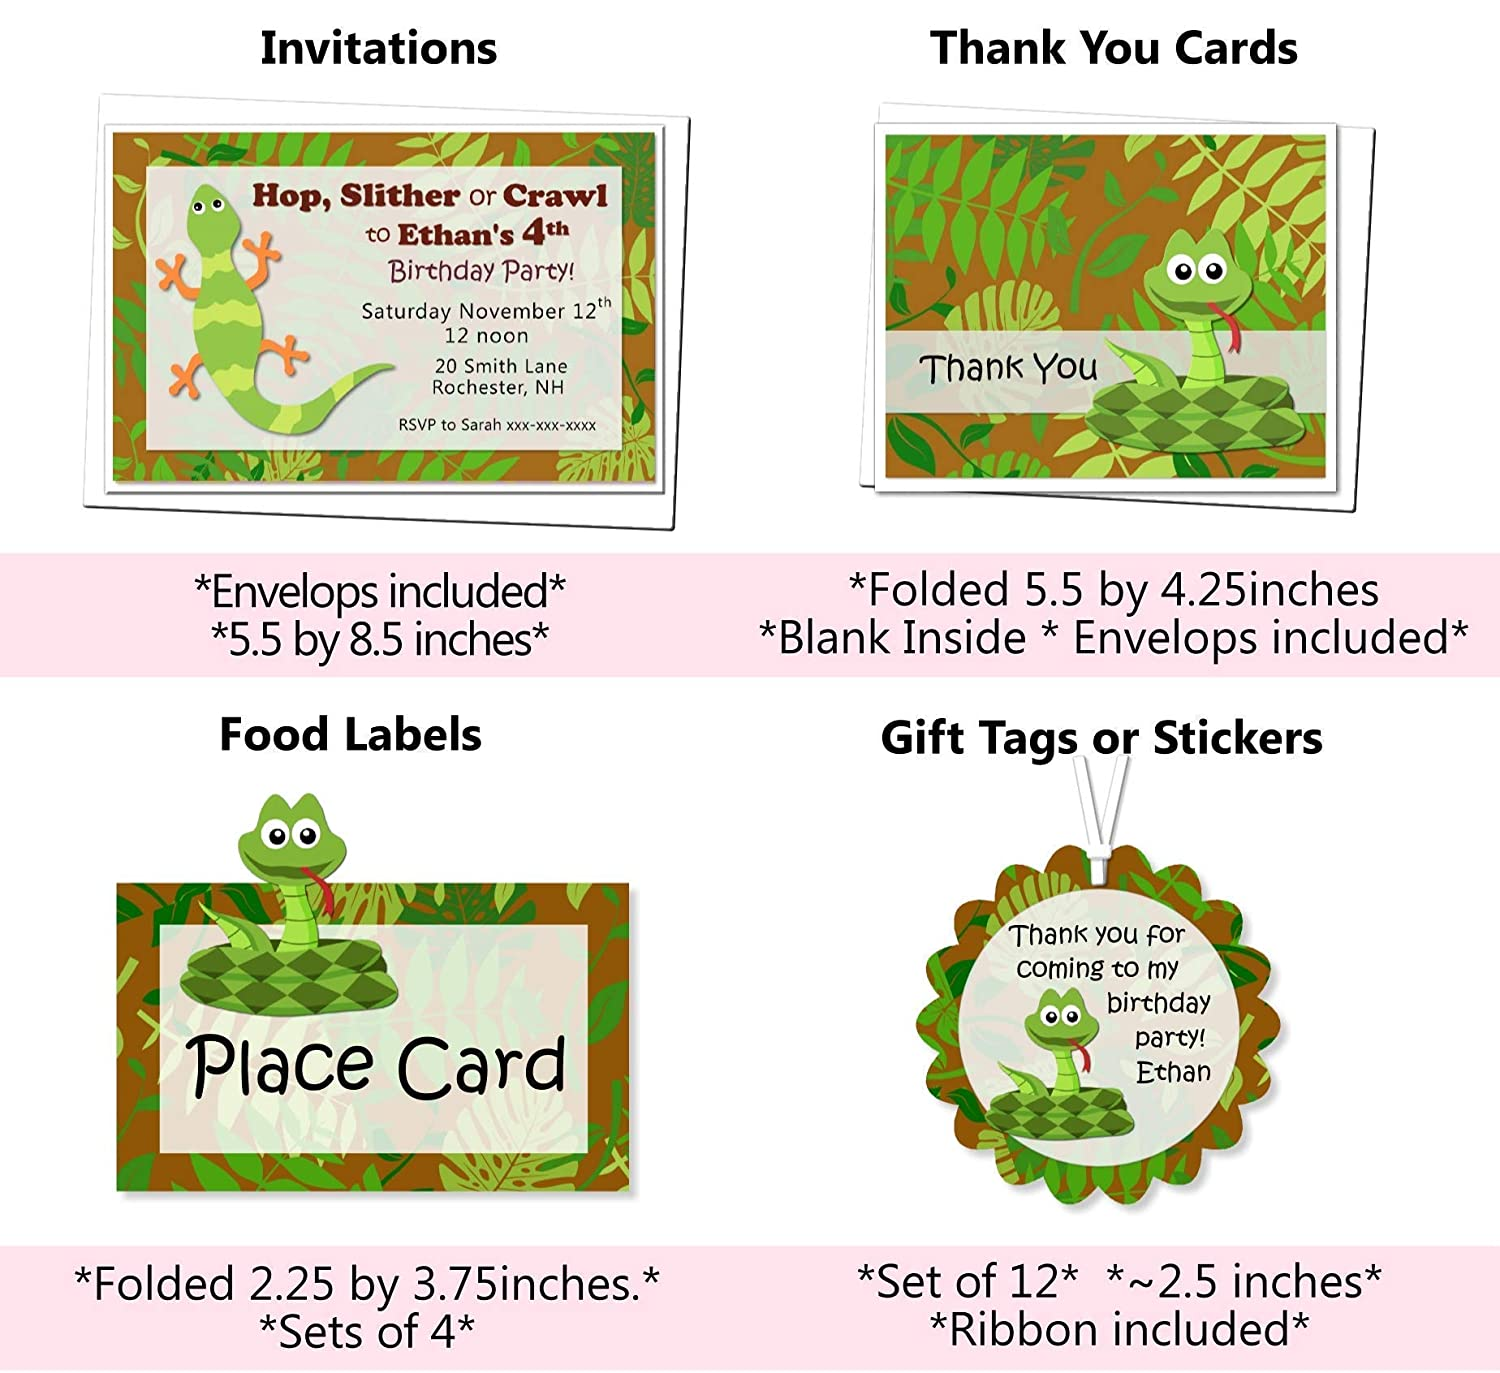 Thank Yous Personalized Reptile Snake Birthday Cake Topper or Table Centerpiece BCPCustom Handmade in USA Favor Tags or Stickers Sign Optional Decorations Invitations